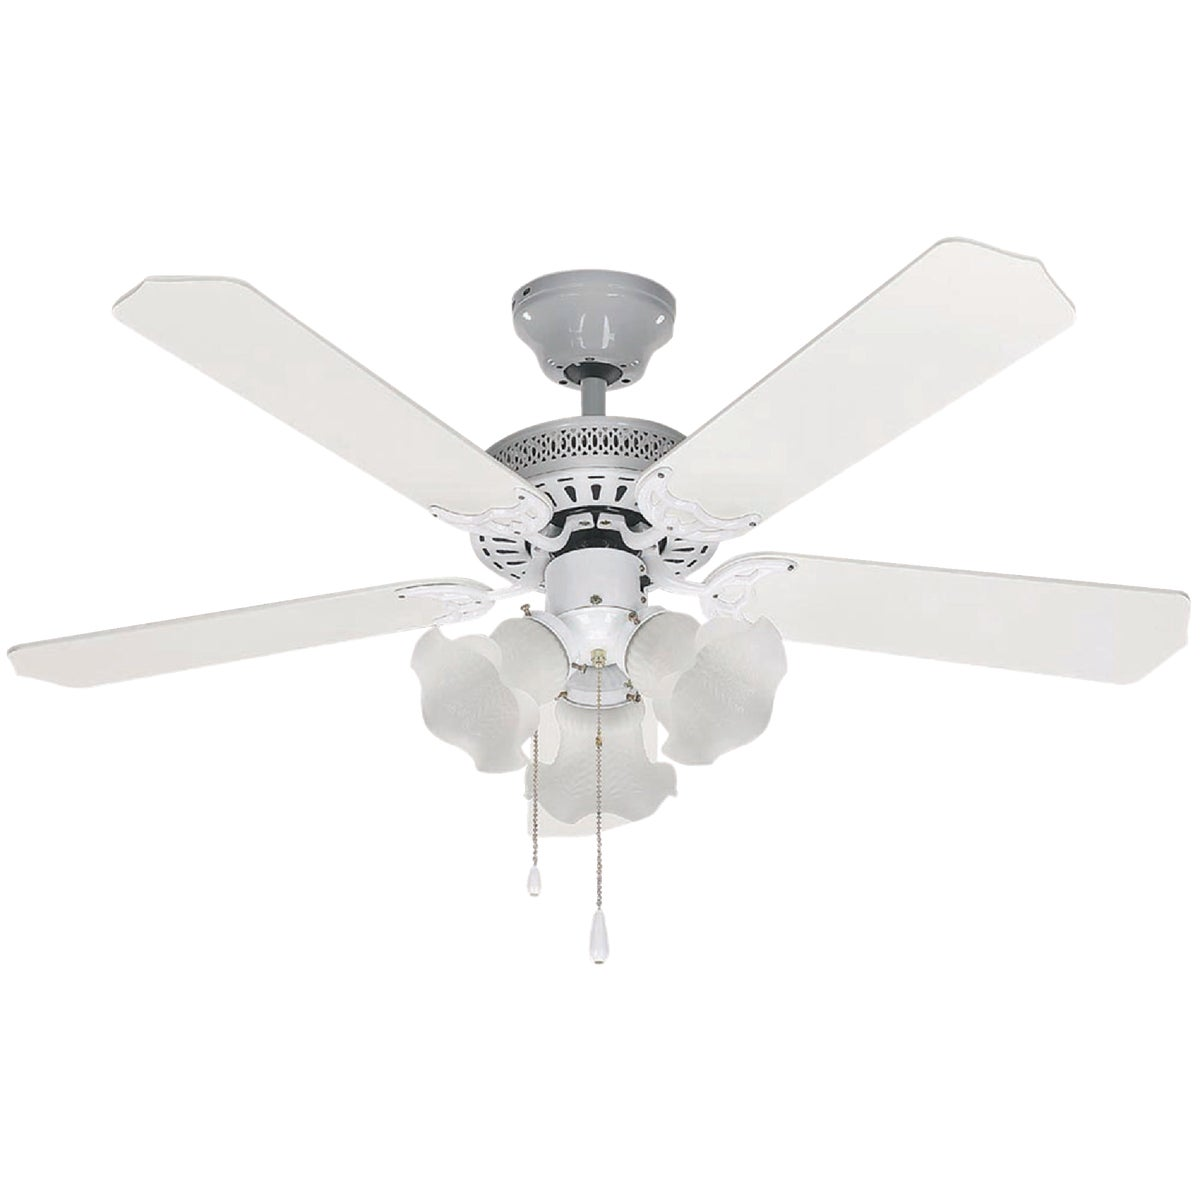 "42"" WHITE CEILING FAN - CF42TRA5WH by Canarm Gs"